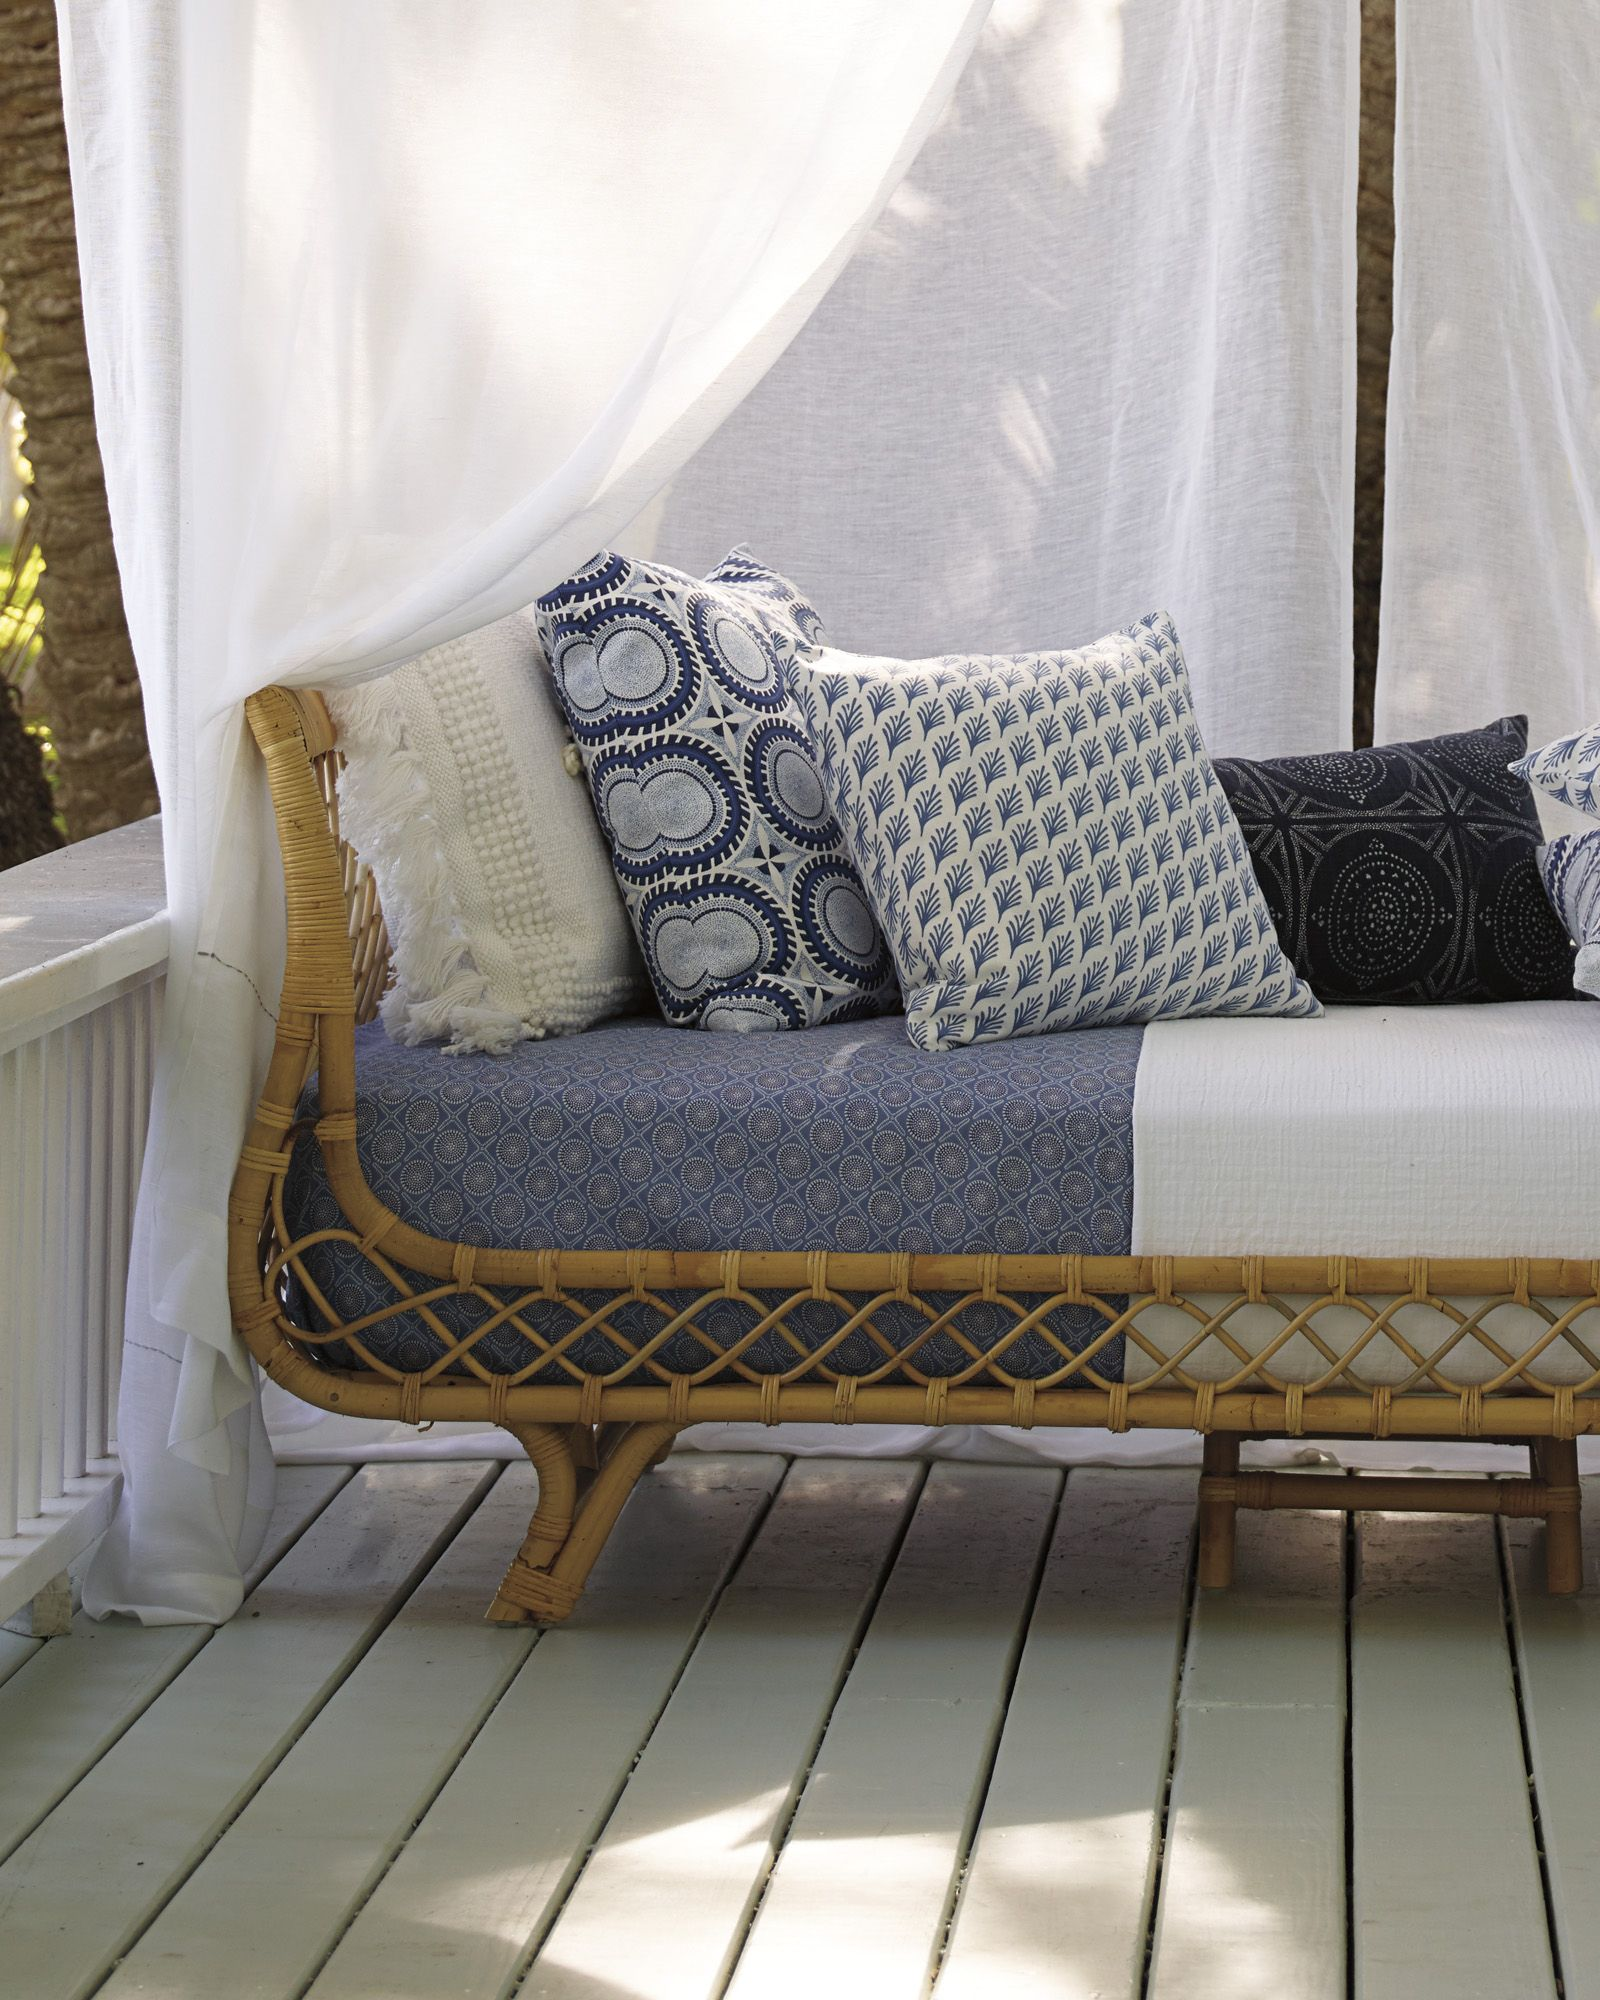 Captiva Outdoor Pillow Cover Outdoor Pillow Covers Rattan Daybed Outdoor Pillows